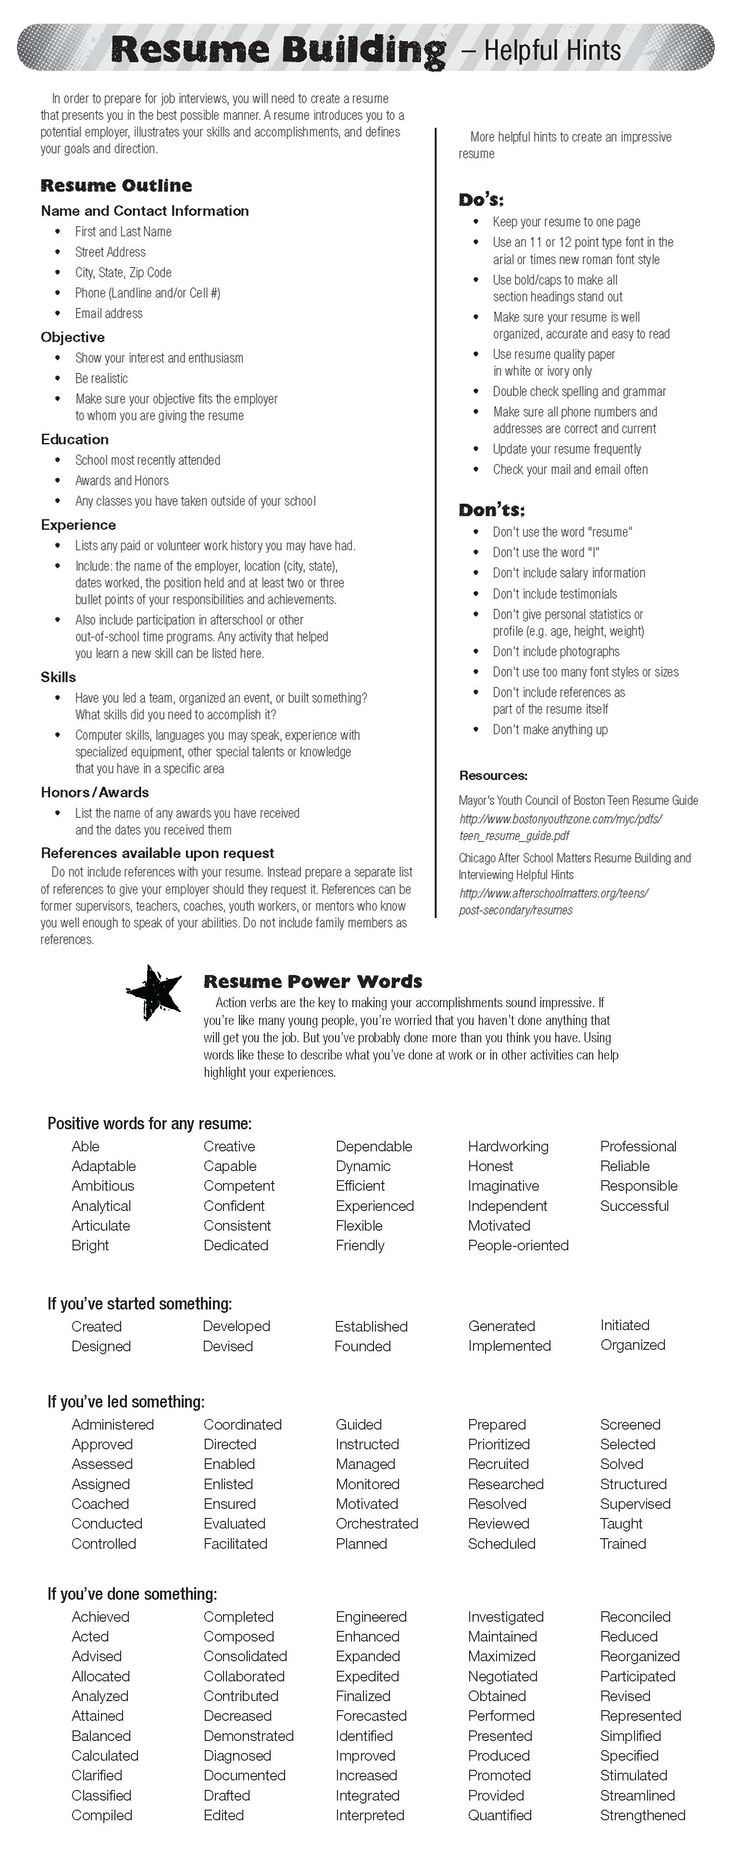 Picnictoimpeachus  Splendid  Ideas About Resume On Pinterest  Cv Format Resume Cv And  With Goodlooking  Ideas About Resume On Pinterest  Cv Format Resume Cv And Resume Templates With Attractive Summary Examples For Resumes Also Data Entry Sample Resume In Addition Strong Communication Skills Resume And Hr Manager Resumes As Well As Online Resume Writer Additionally Paralegal Job Description Resume From Pinterestcom With Picnictoimpeachus  Goodlooking  Ideas About Resume On Pinterest  Cv Format Resume Cv And  With Attractive  Ideas About Resume On Pinterest  Cv Format Resume Cv And Resume Templates And Splendid Summary Examples For Resumes Also Data Entry Sample Resume In Addition Strong Communication Skills Resume From Pinterestcom